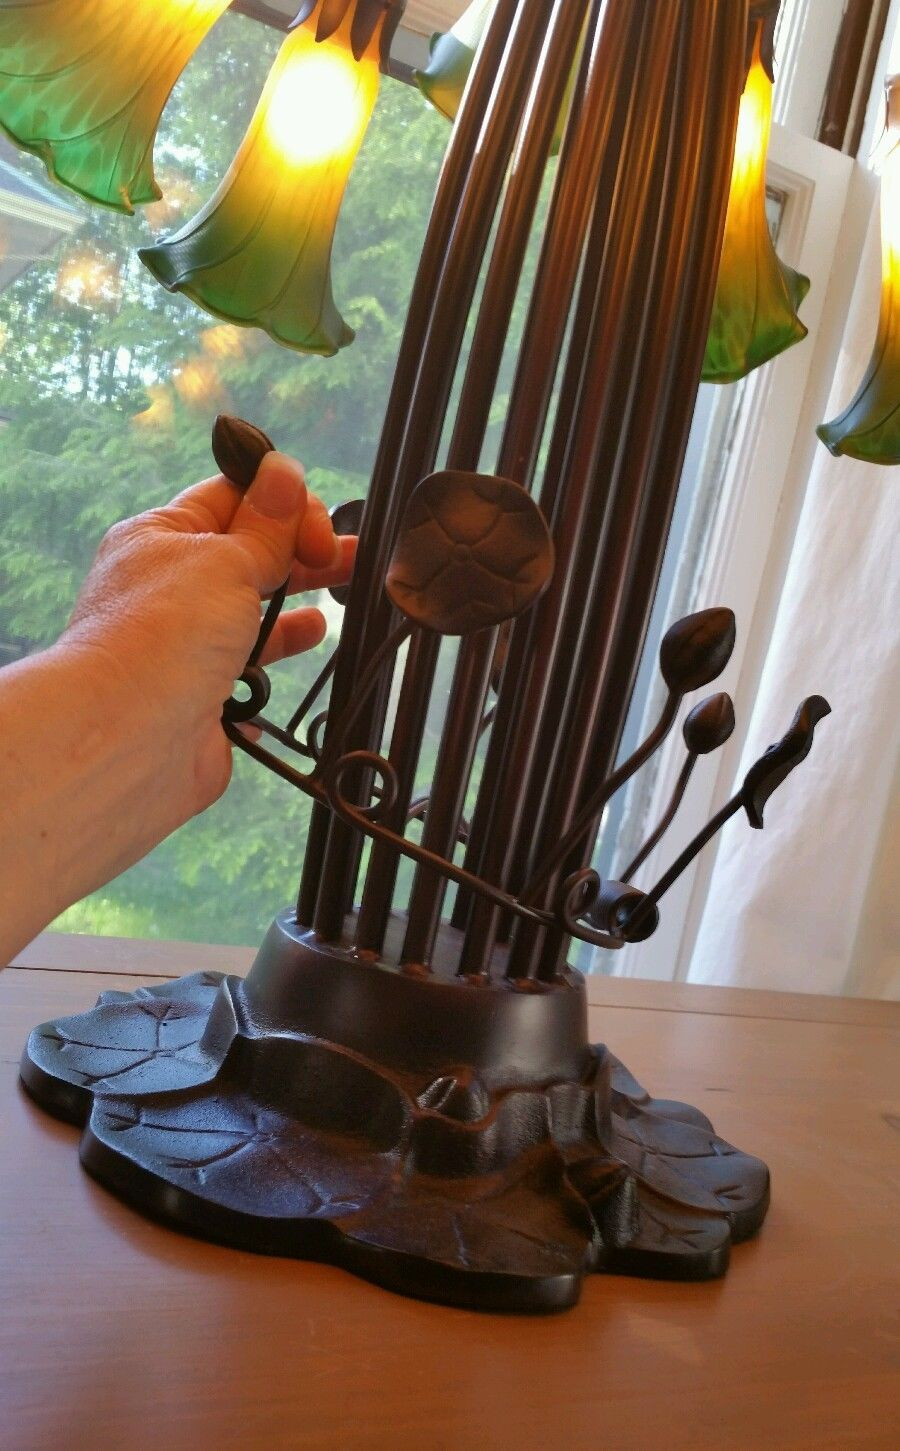 Details about Tiffany Style Antique Bronze Hot Air Balloon